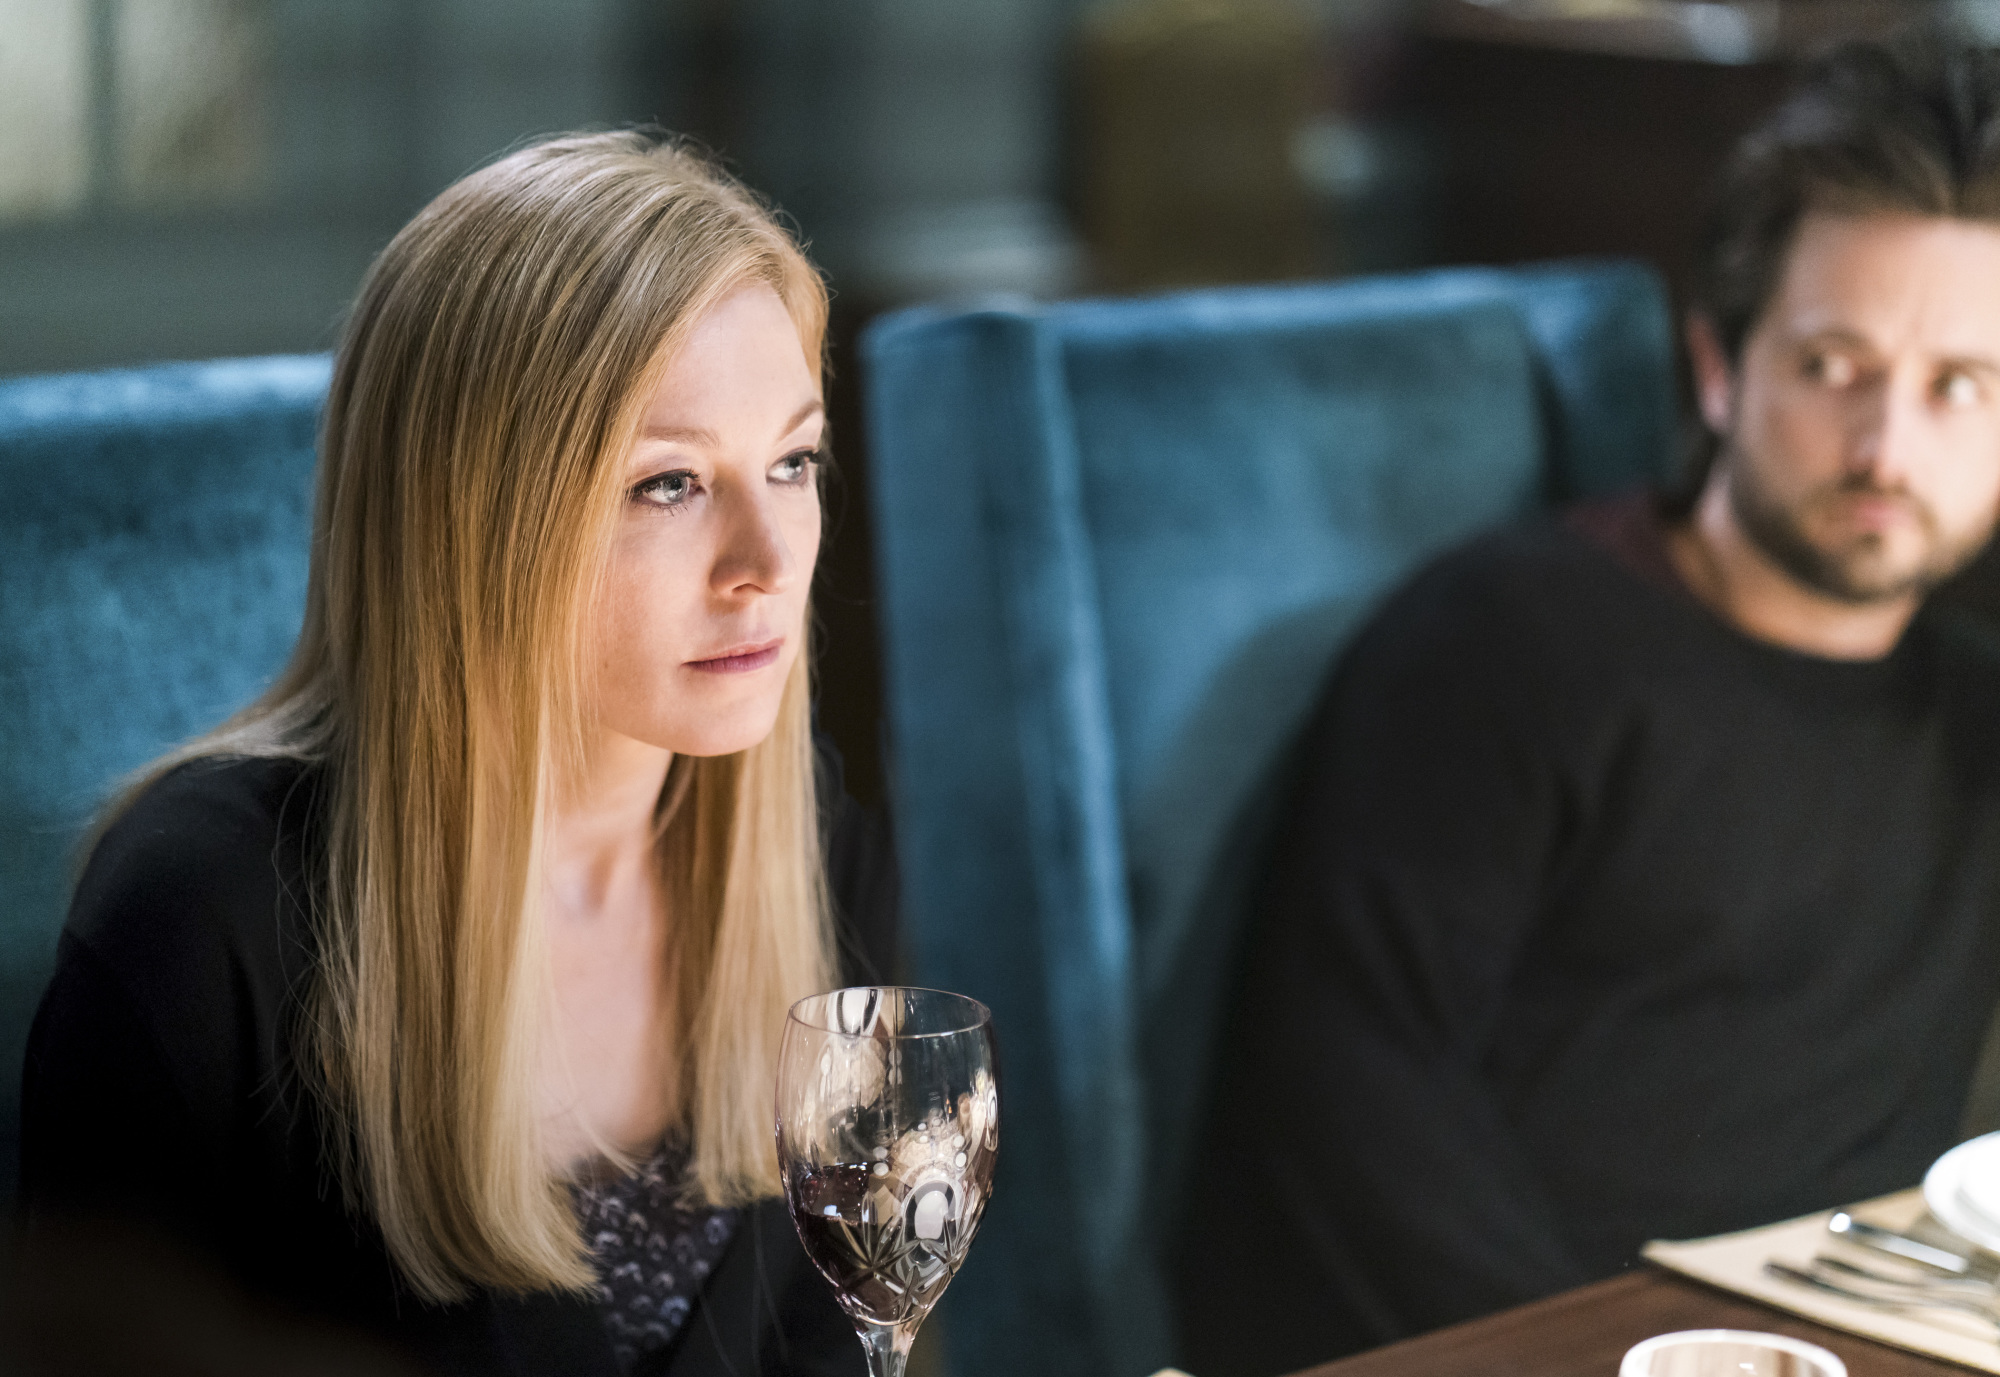 Alison speaks with her family over a tense dinner.